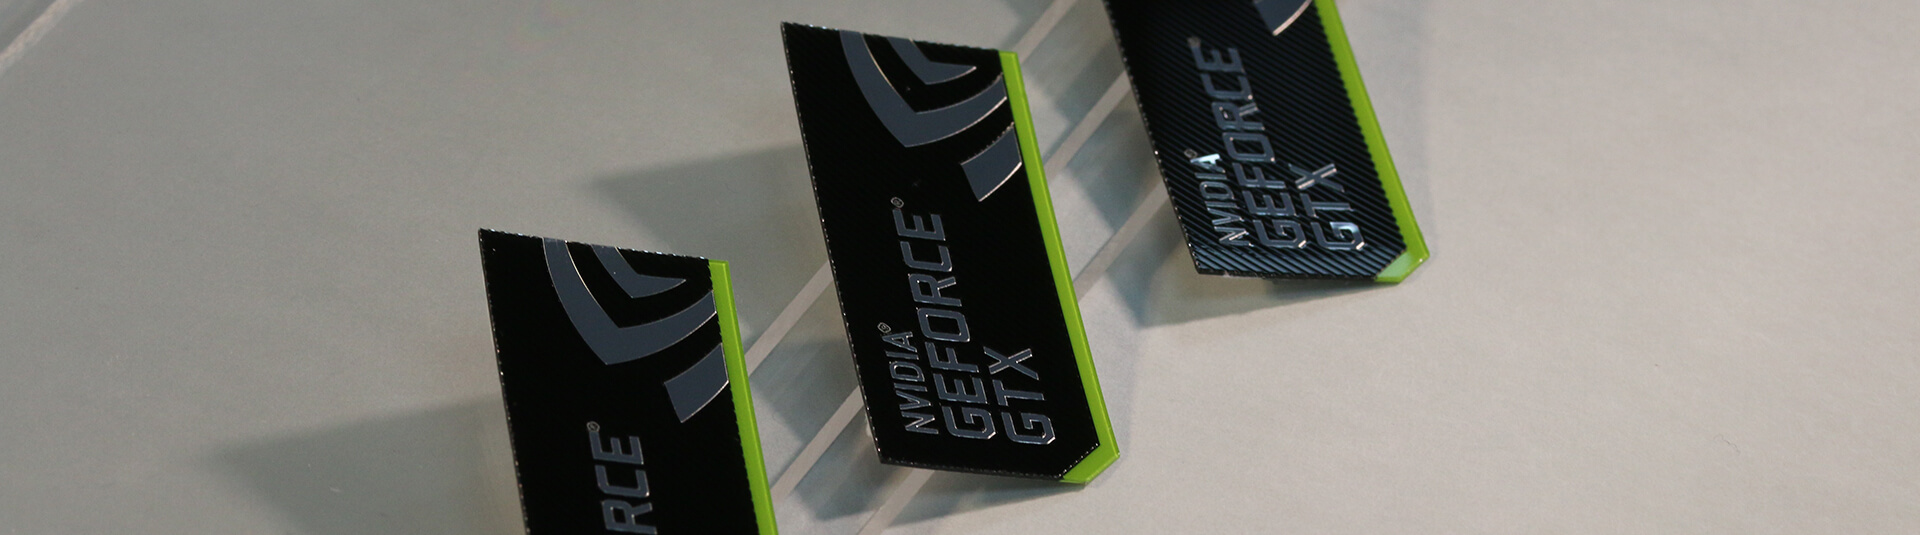 Nvida Geforce Brand Labels for Graphics Cards